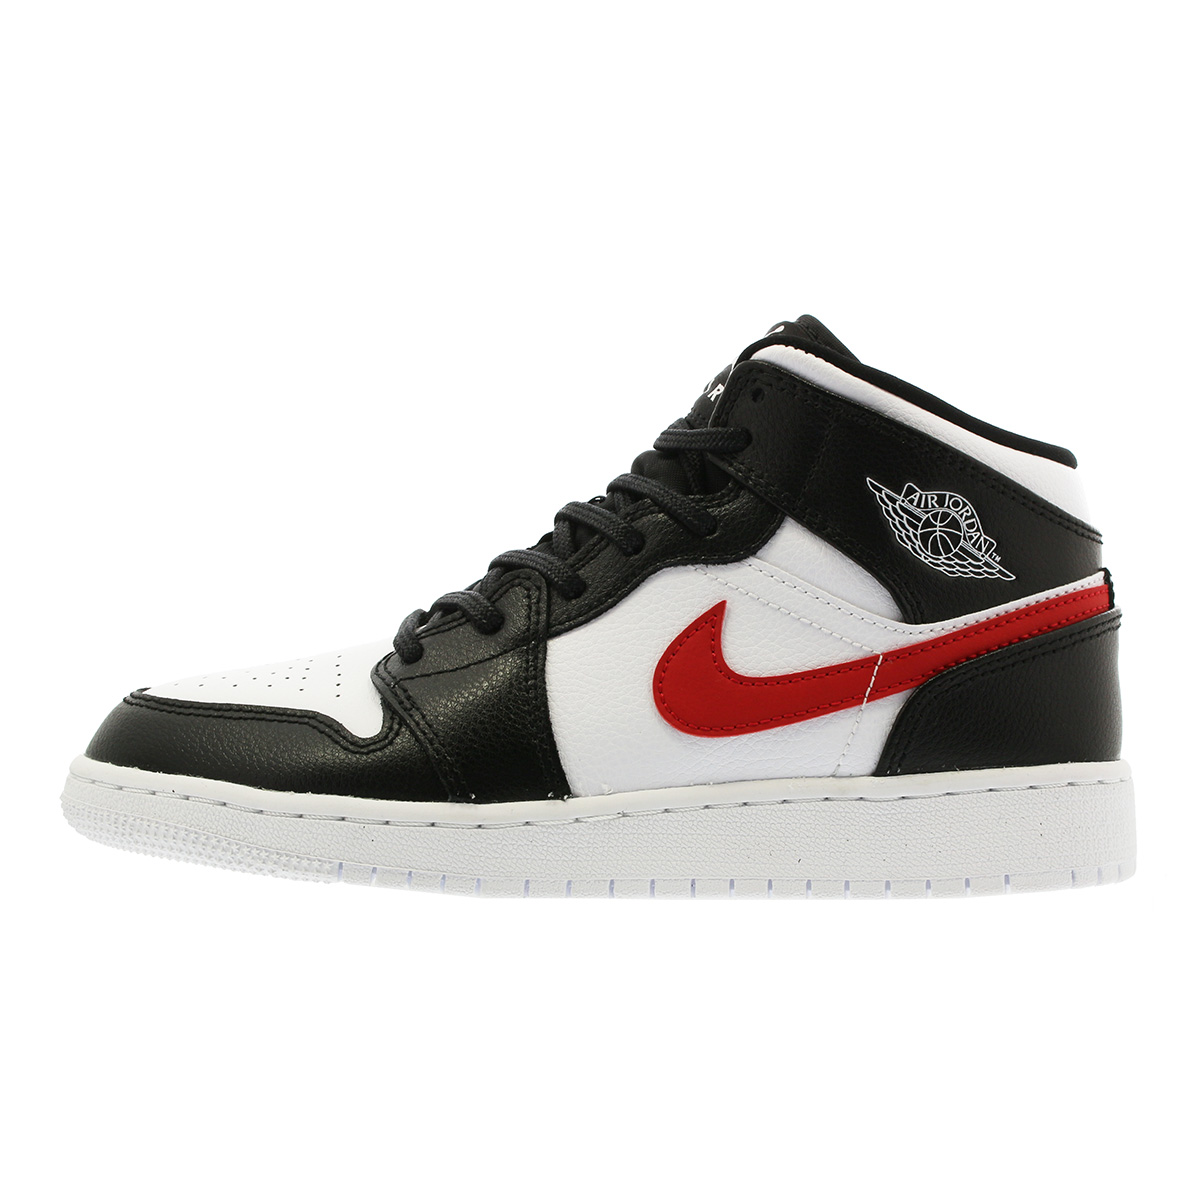 NIKE AIR JORDAN 1 MID BG Nike Air Jordan 1 mid BG BLACK WHITE RED YELLOW BLUE GREEN  554 b911862a3